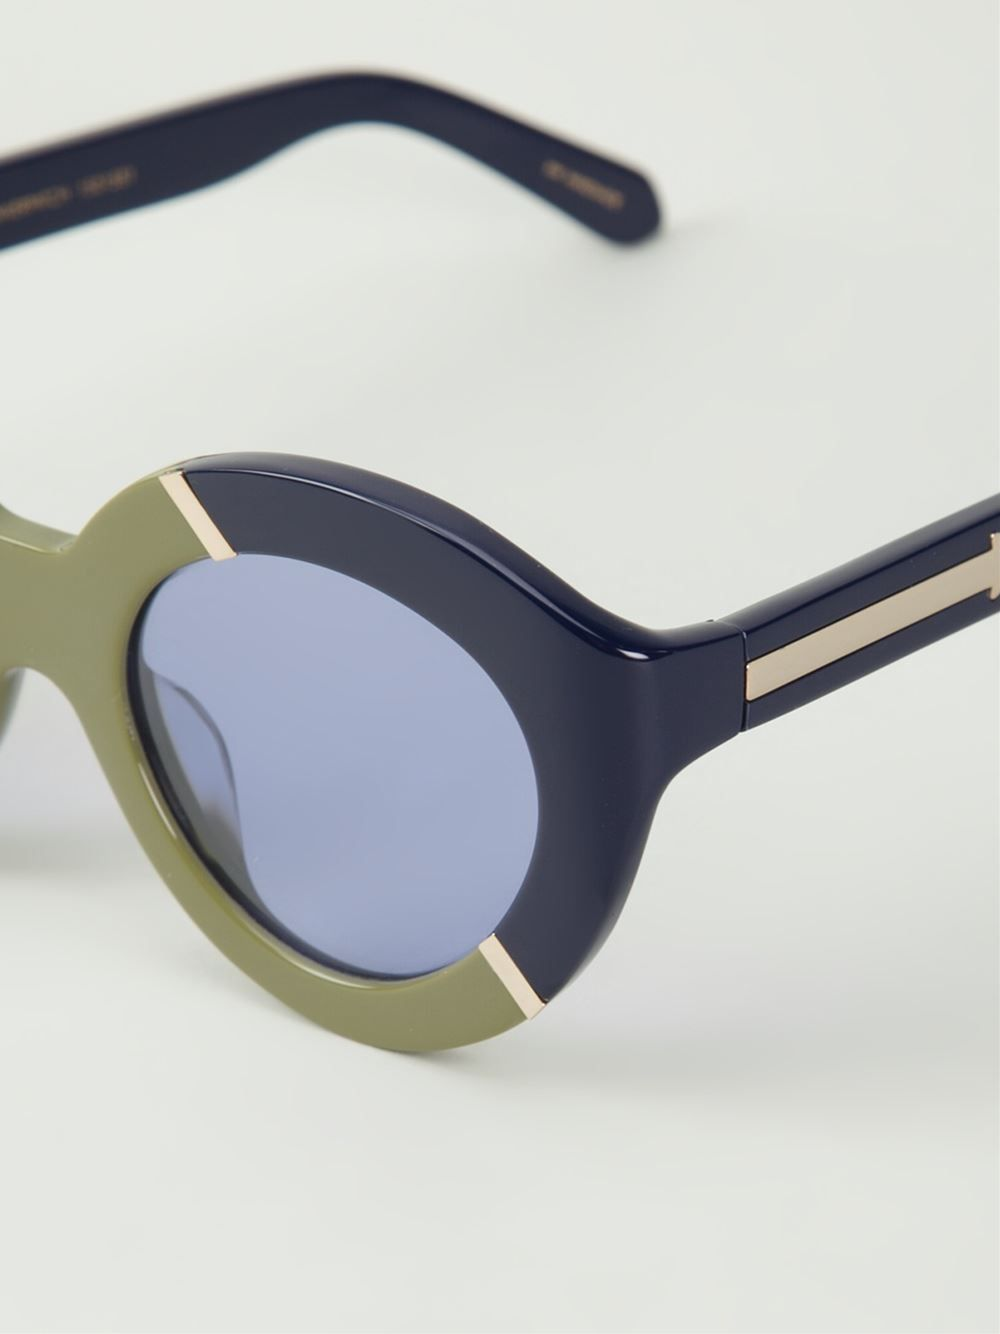 Karen Walker Eyewear 'flower Patch' Sunglasses -  - Farfetch.com